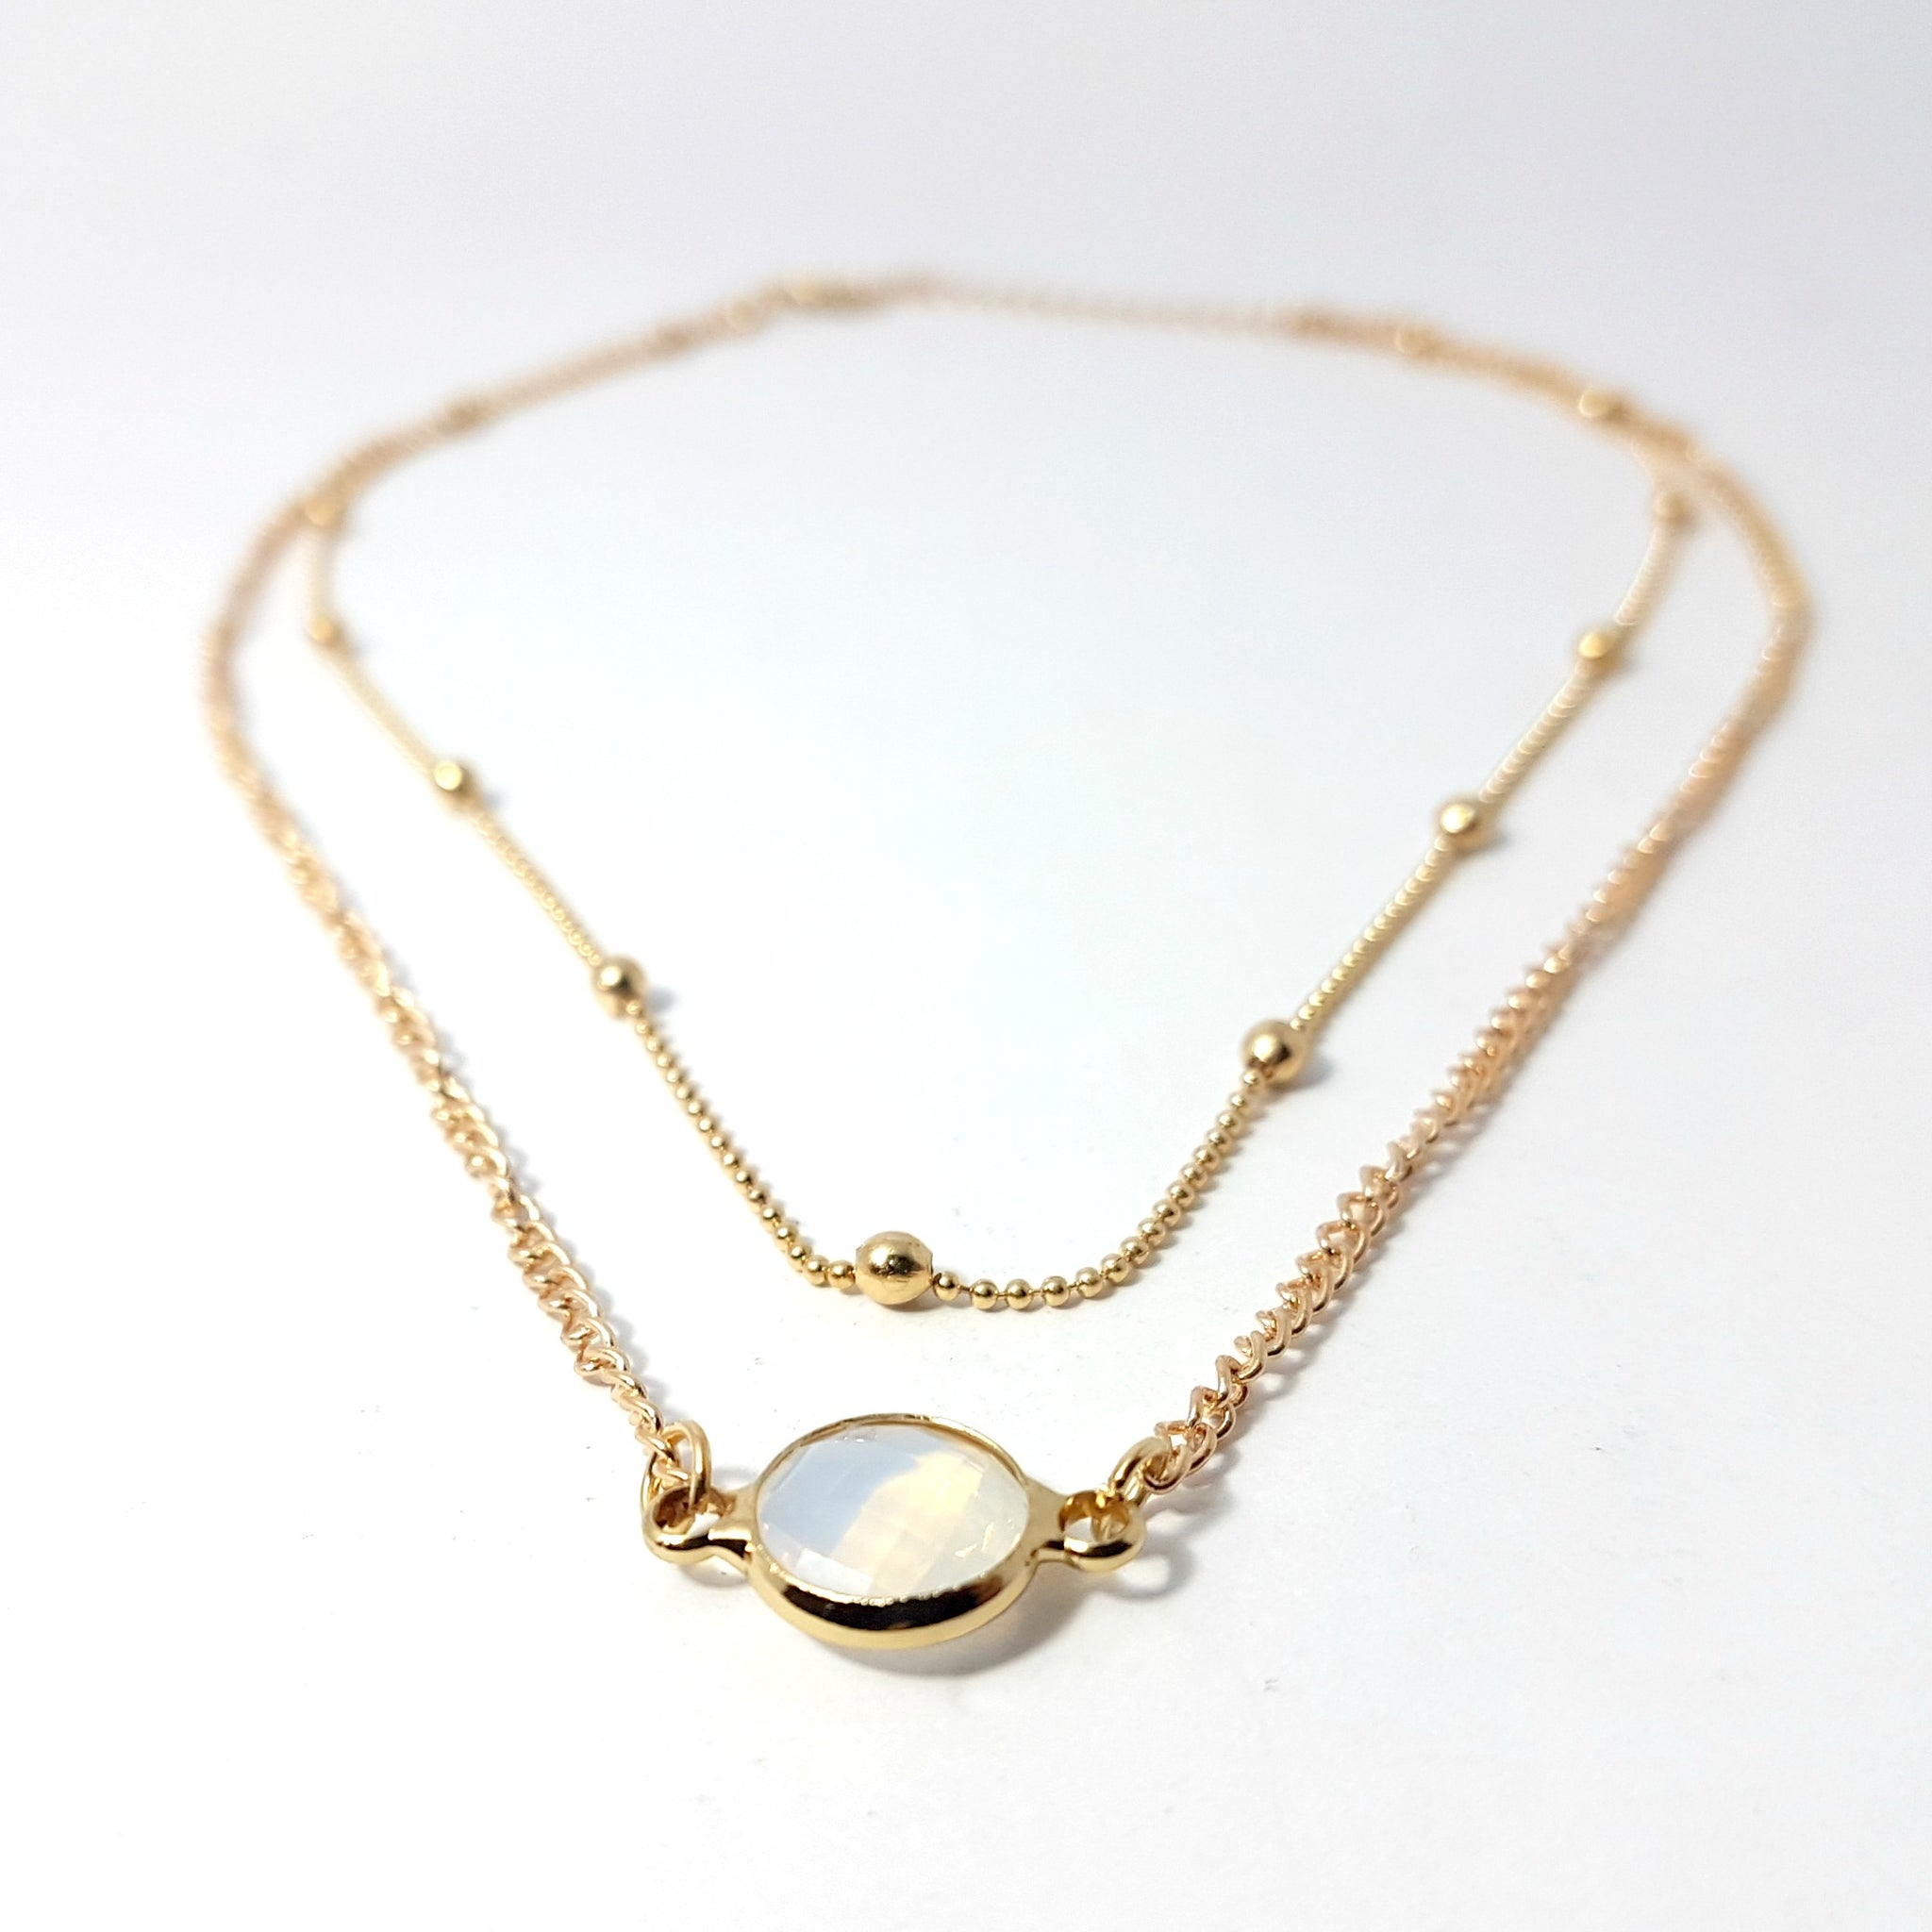 gilded necklace tier strong goldplattiert grosse silver plated collier gold tagliatelle c